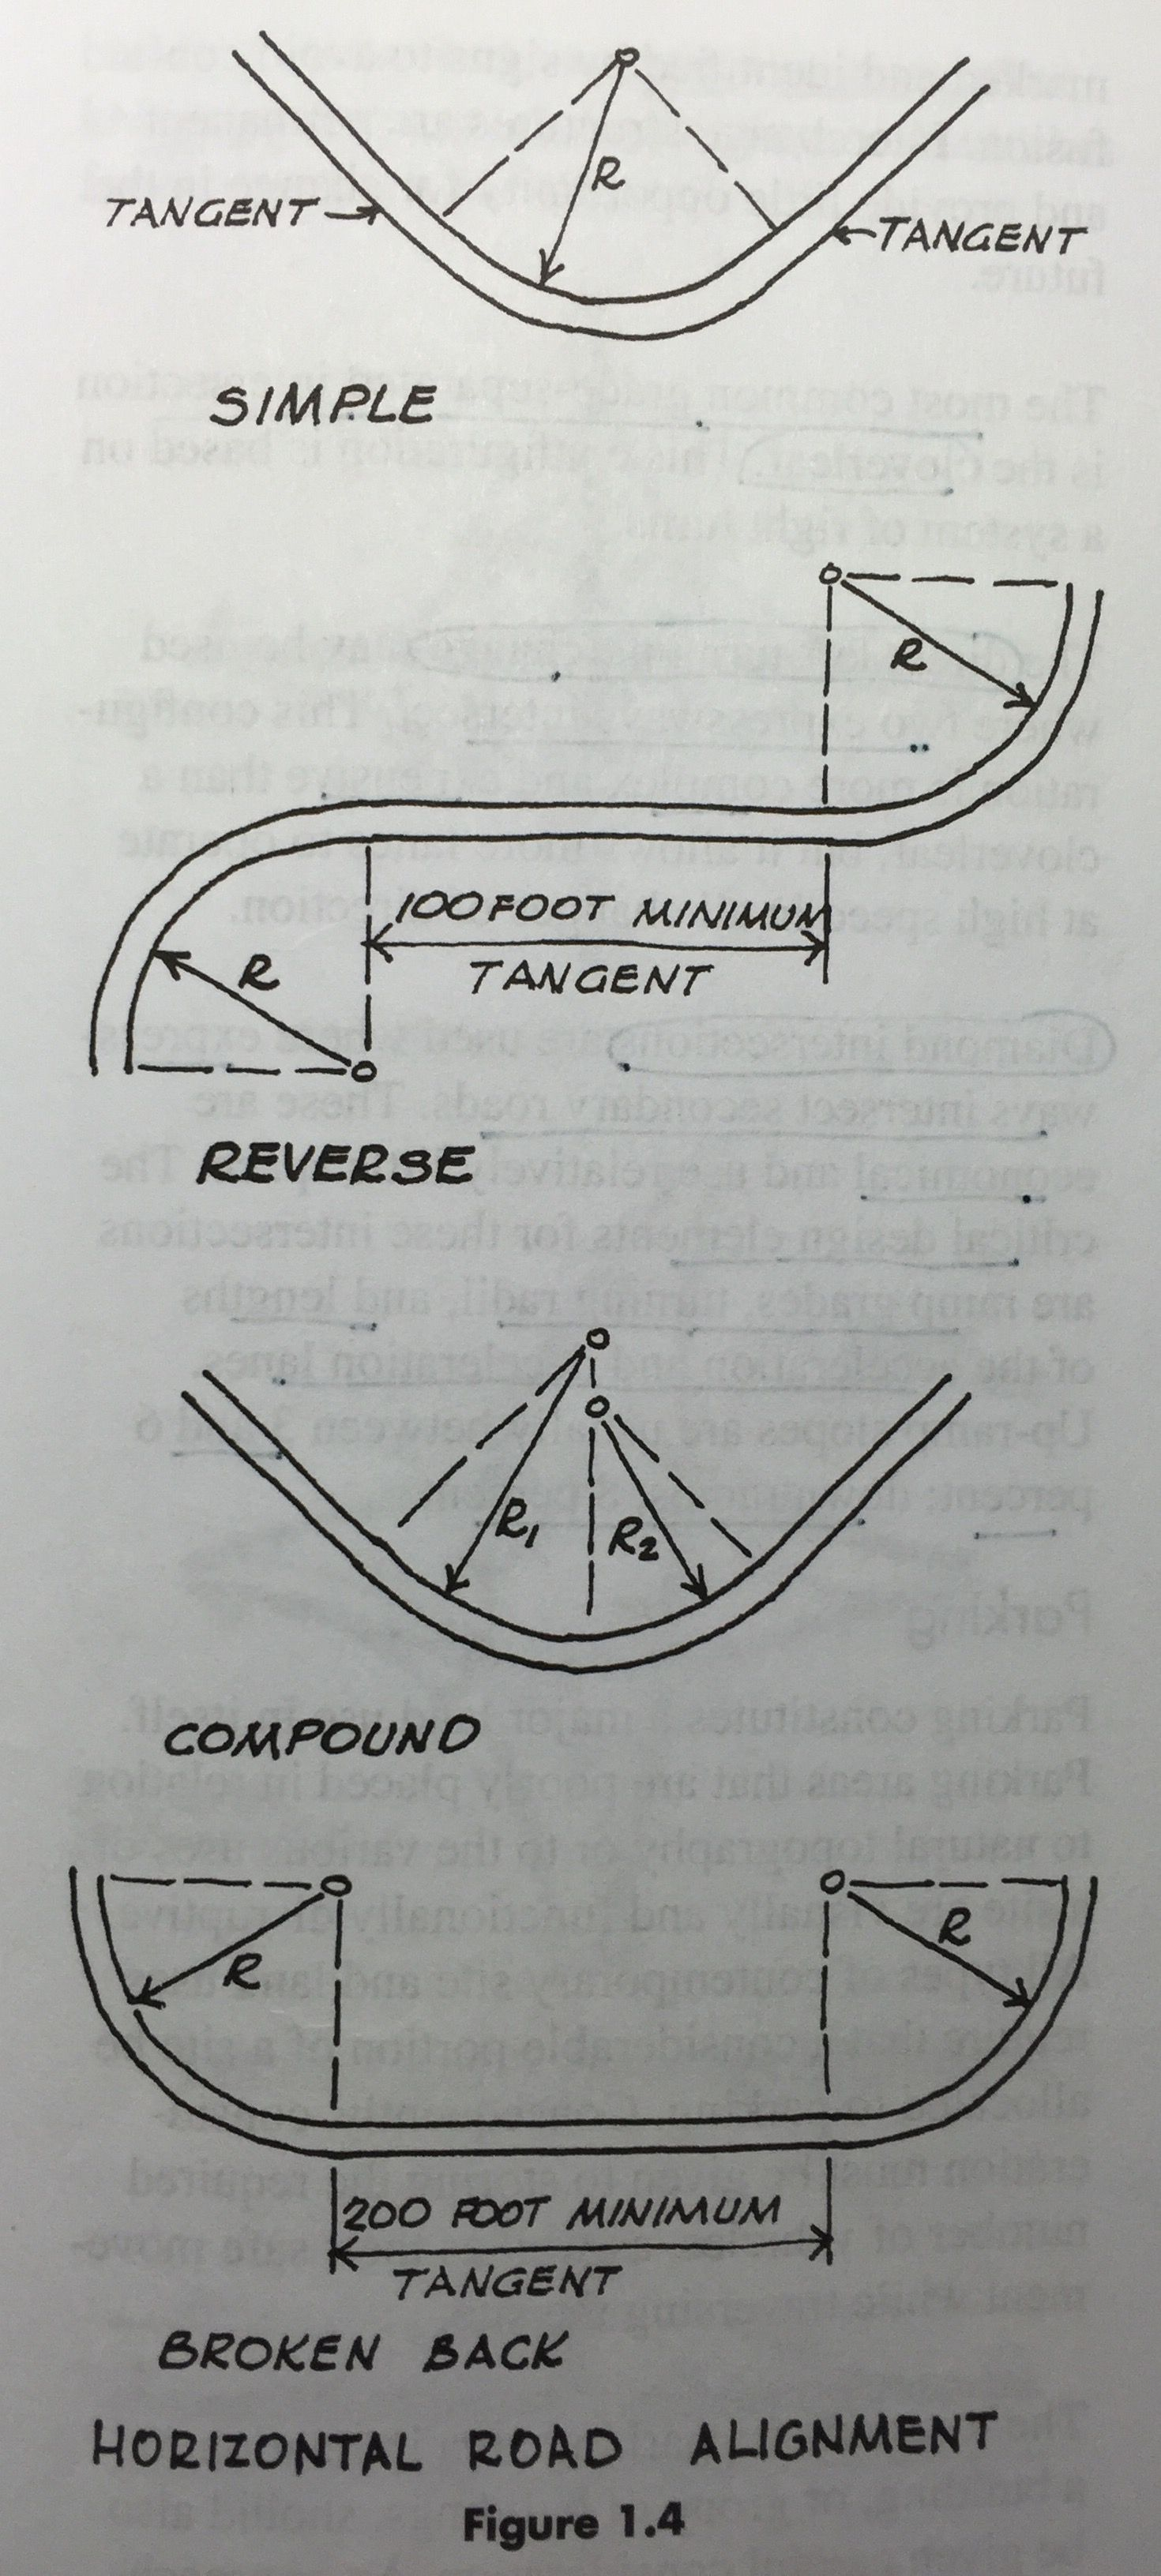 roads consist of tangents straight lines and curves generally arcs of a circle broken back two curves in same direction separated by 200ft tangent  [ 1470 x 3263 Pixel ]